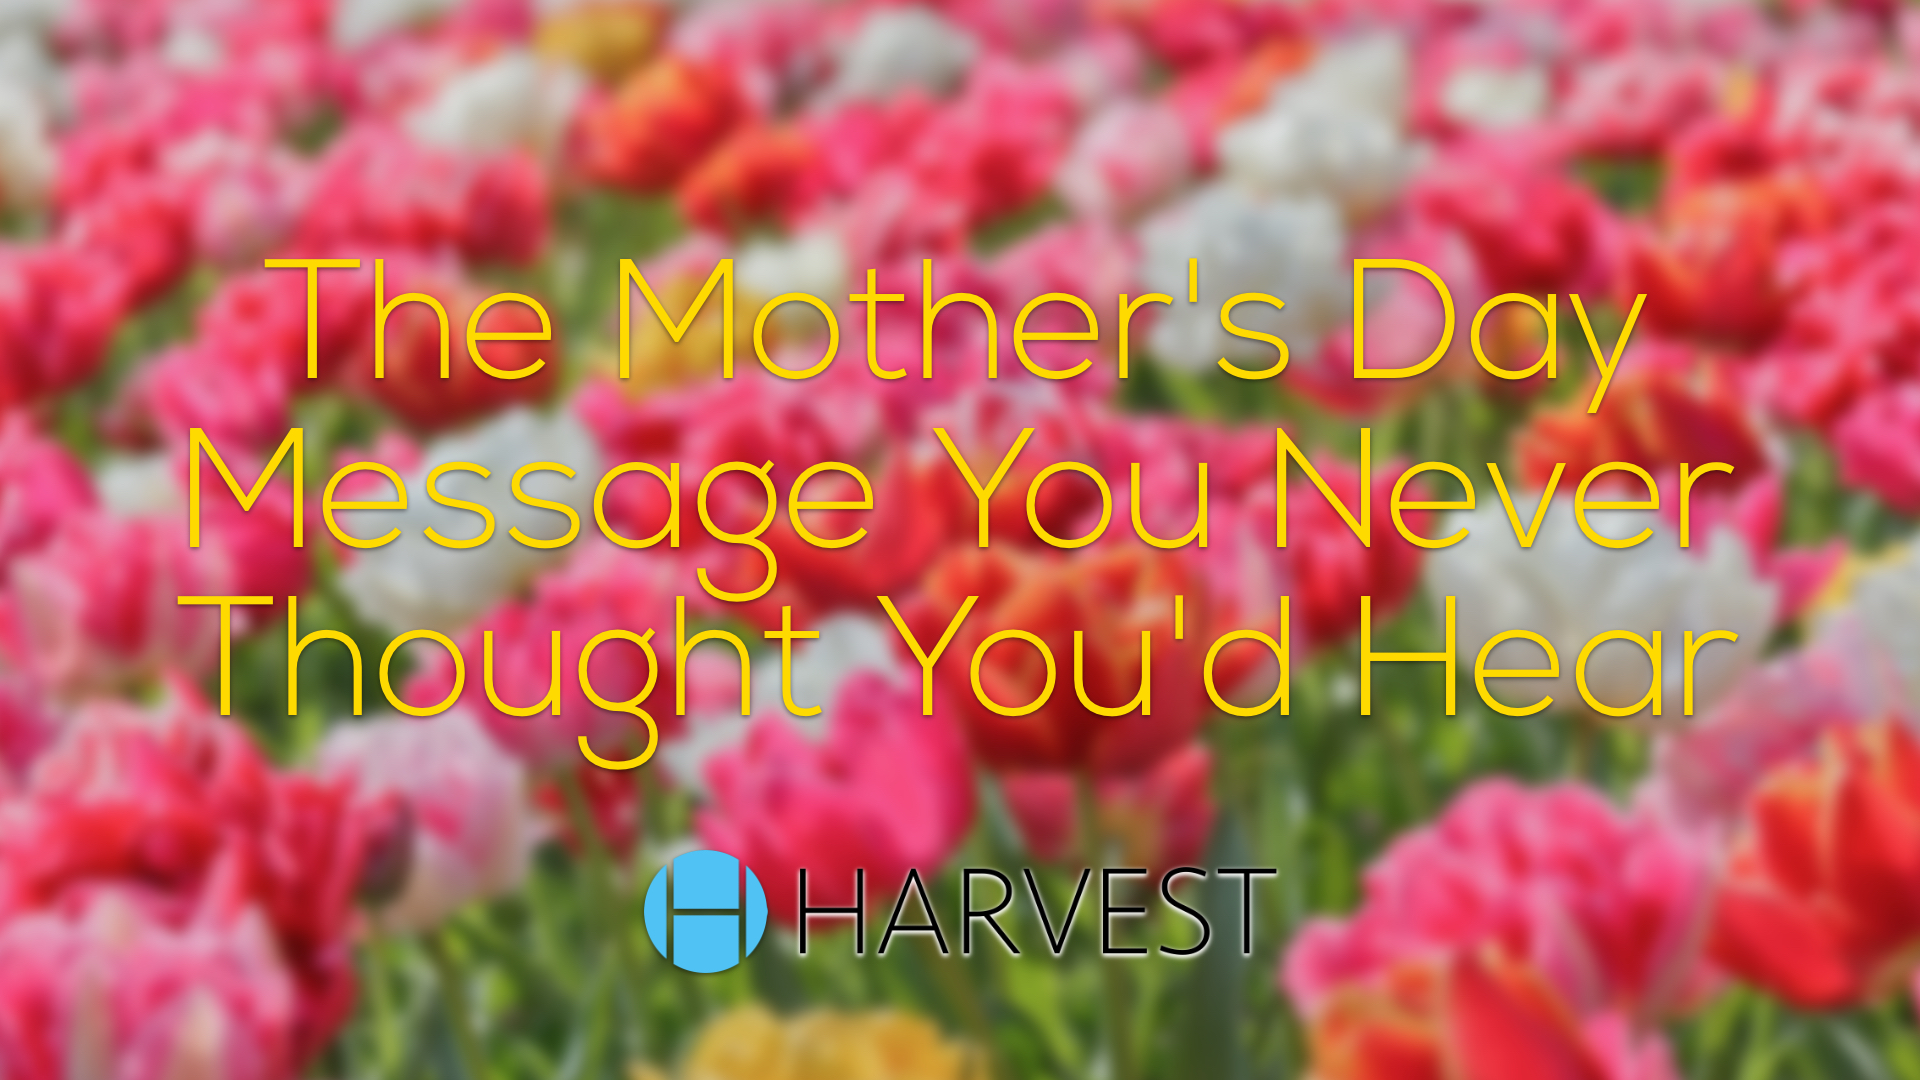 The Mother's Day Message You Never Thought You'd Hear